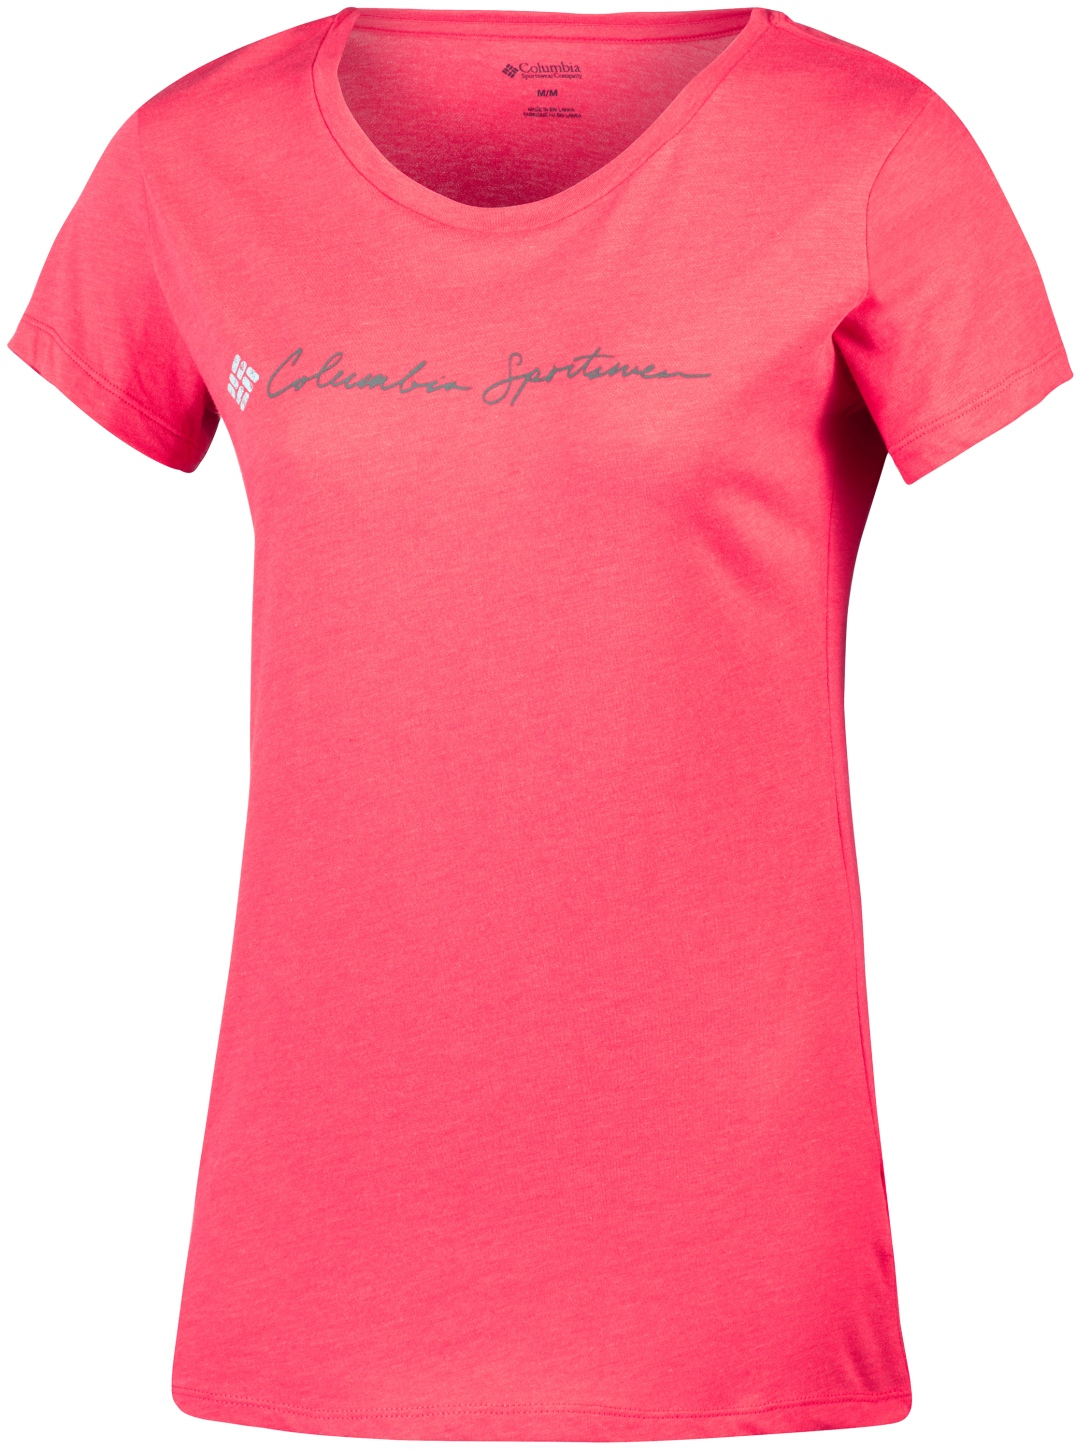 Columbia Women's CSC Script Logo Short Sleeve T-shirt Red Camellia-30